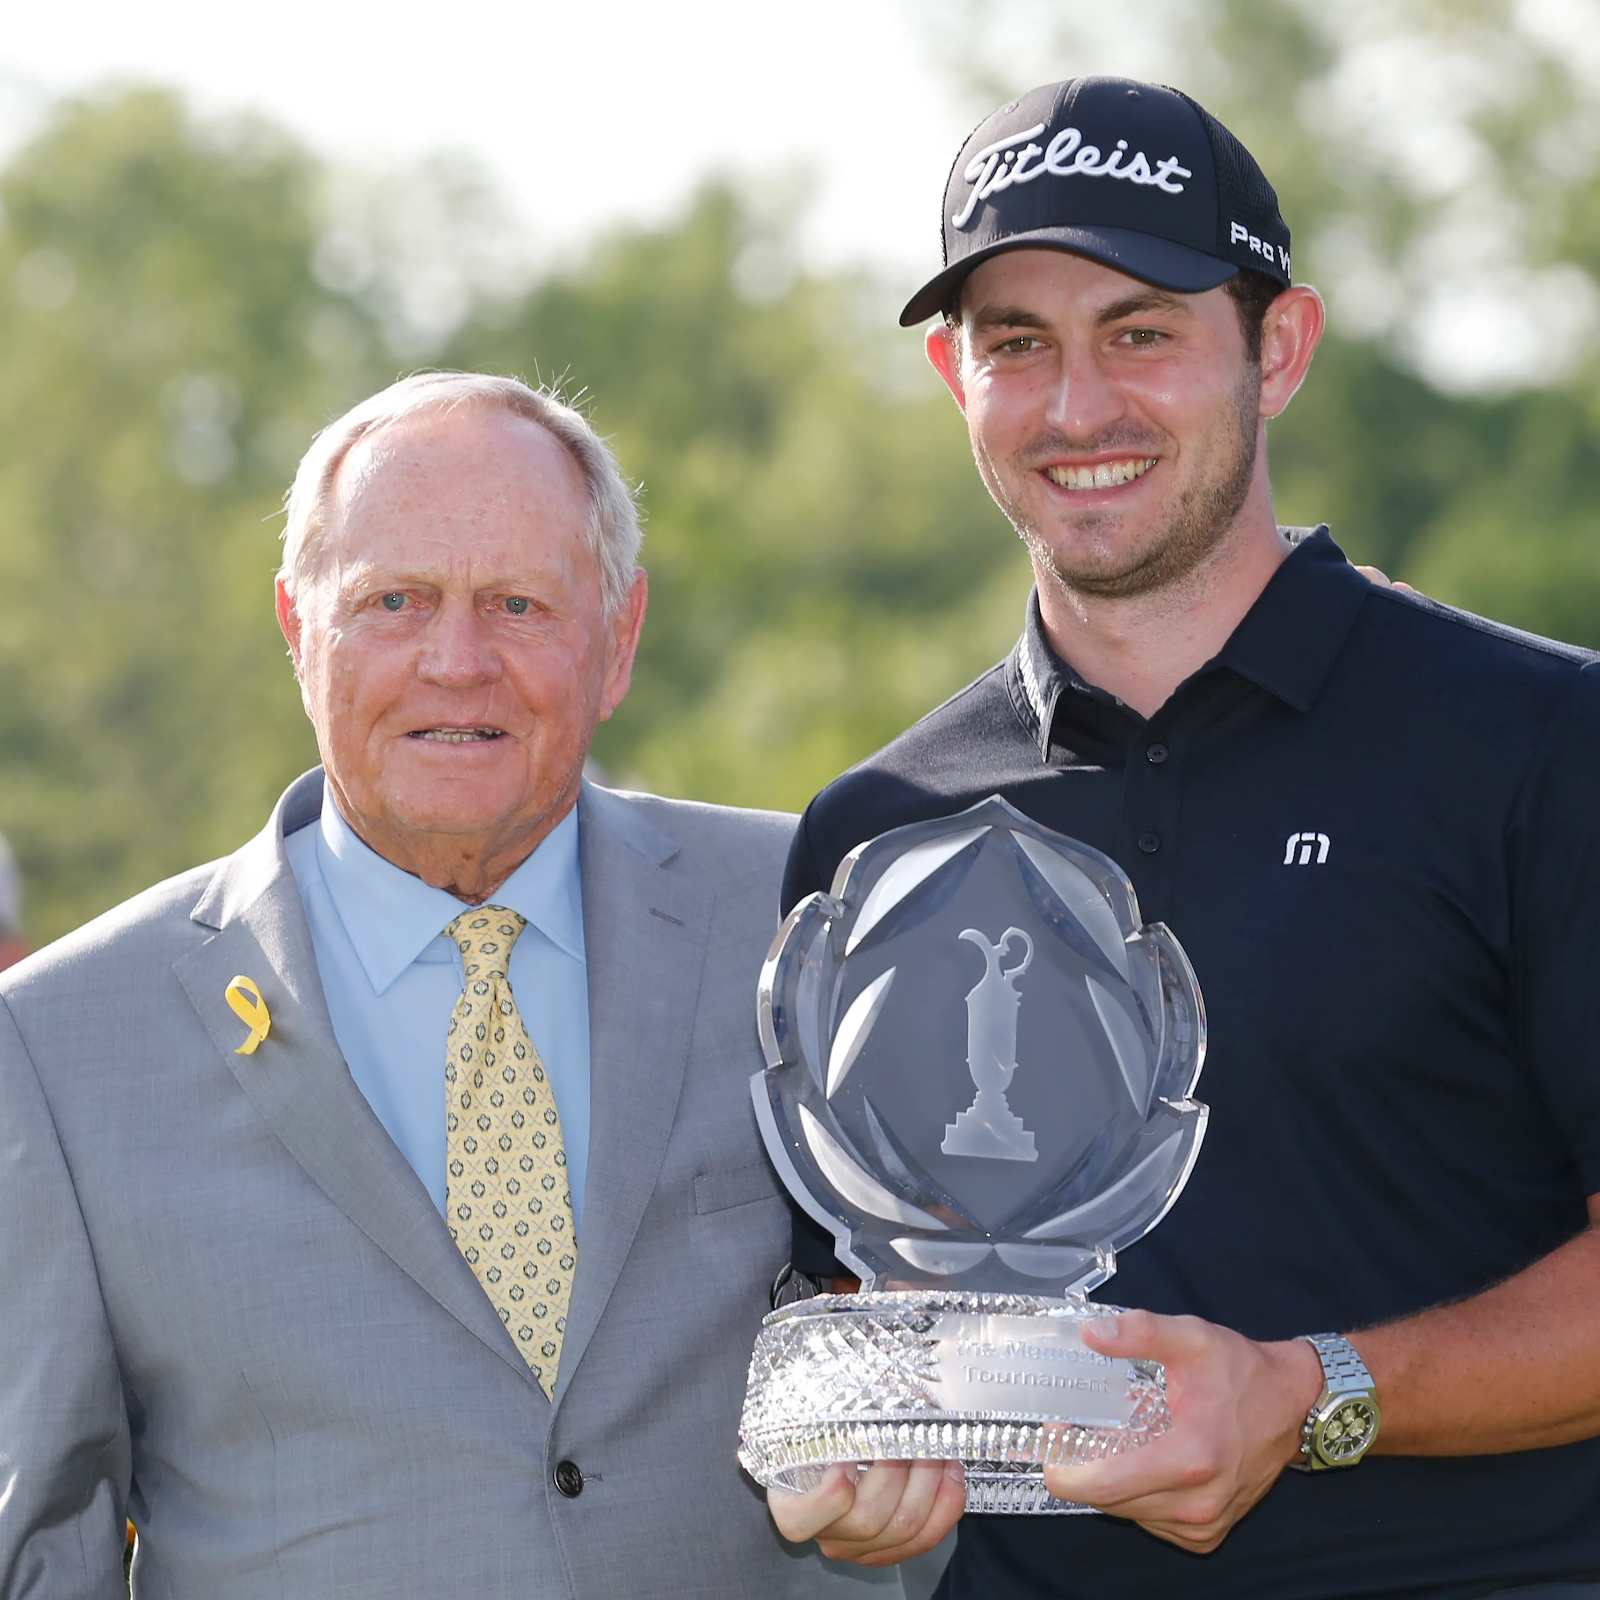 Jack Nicklaus featured with the winner of a previous Memorial Tournament while holding the trophy